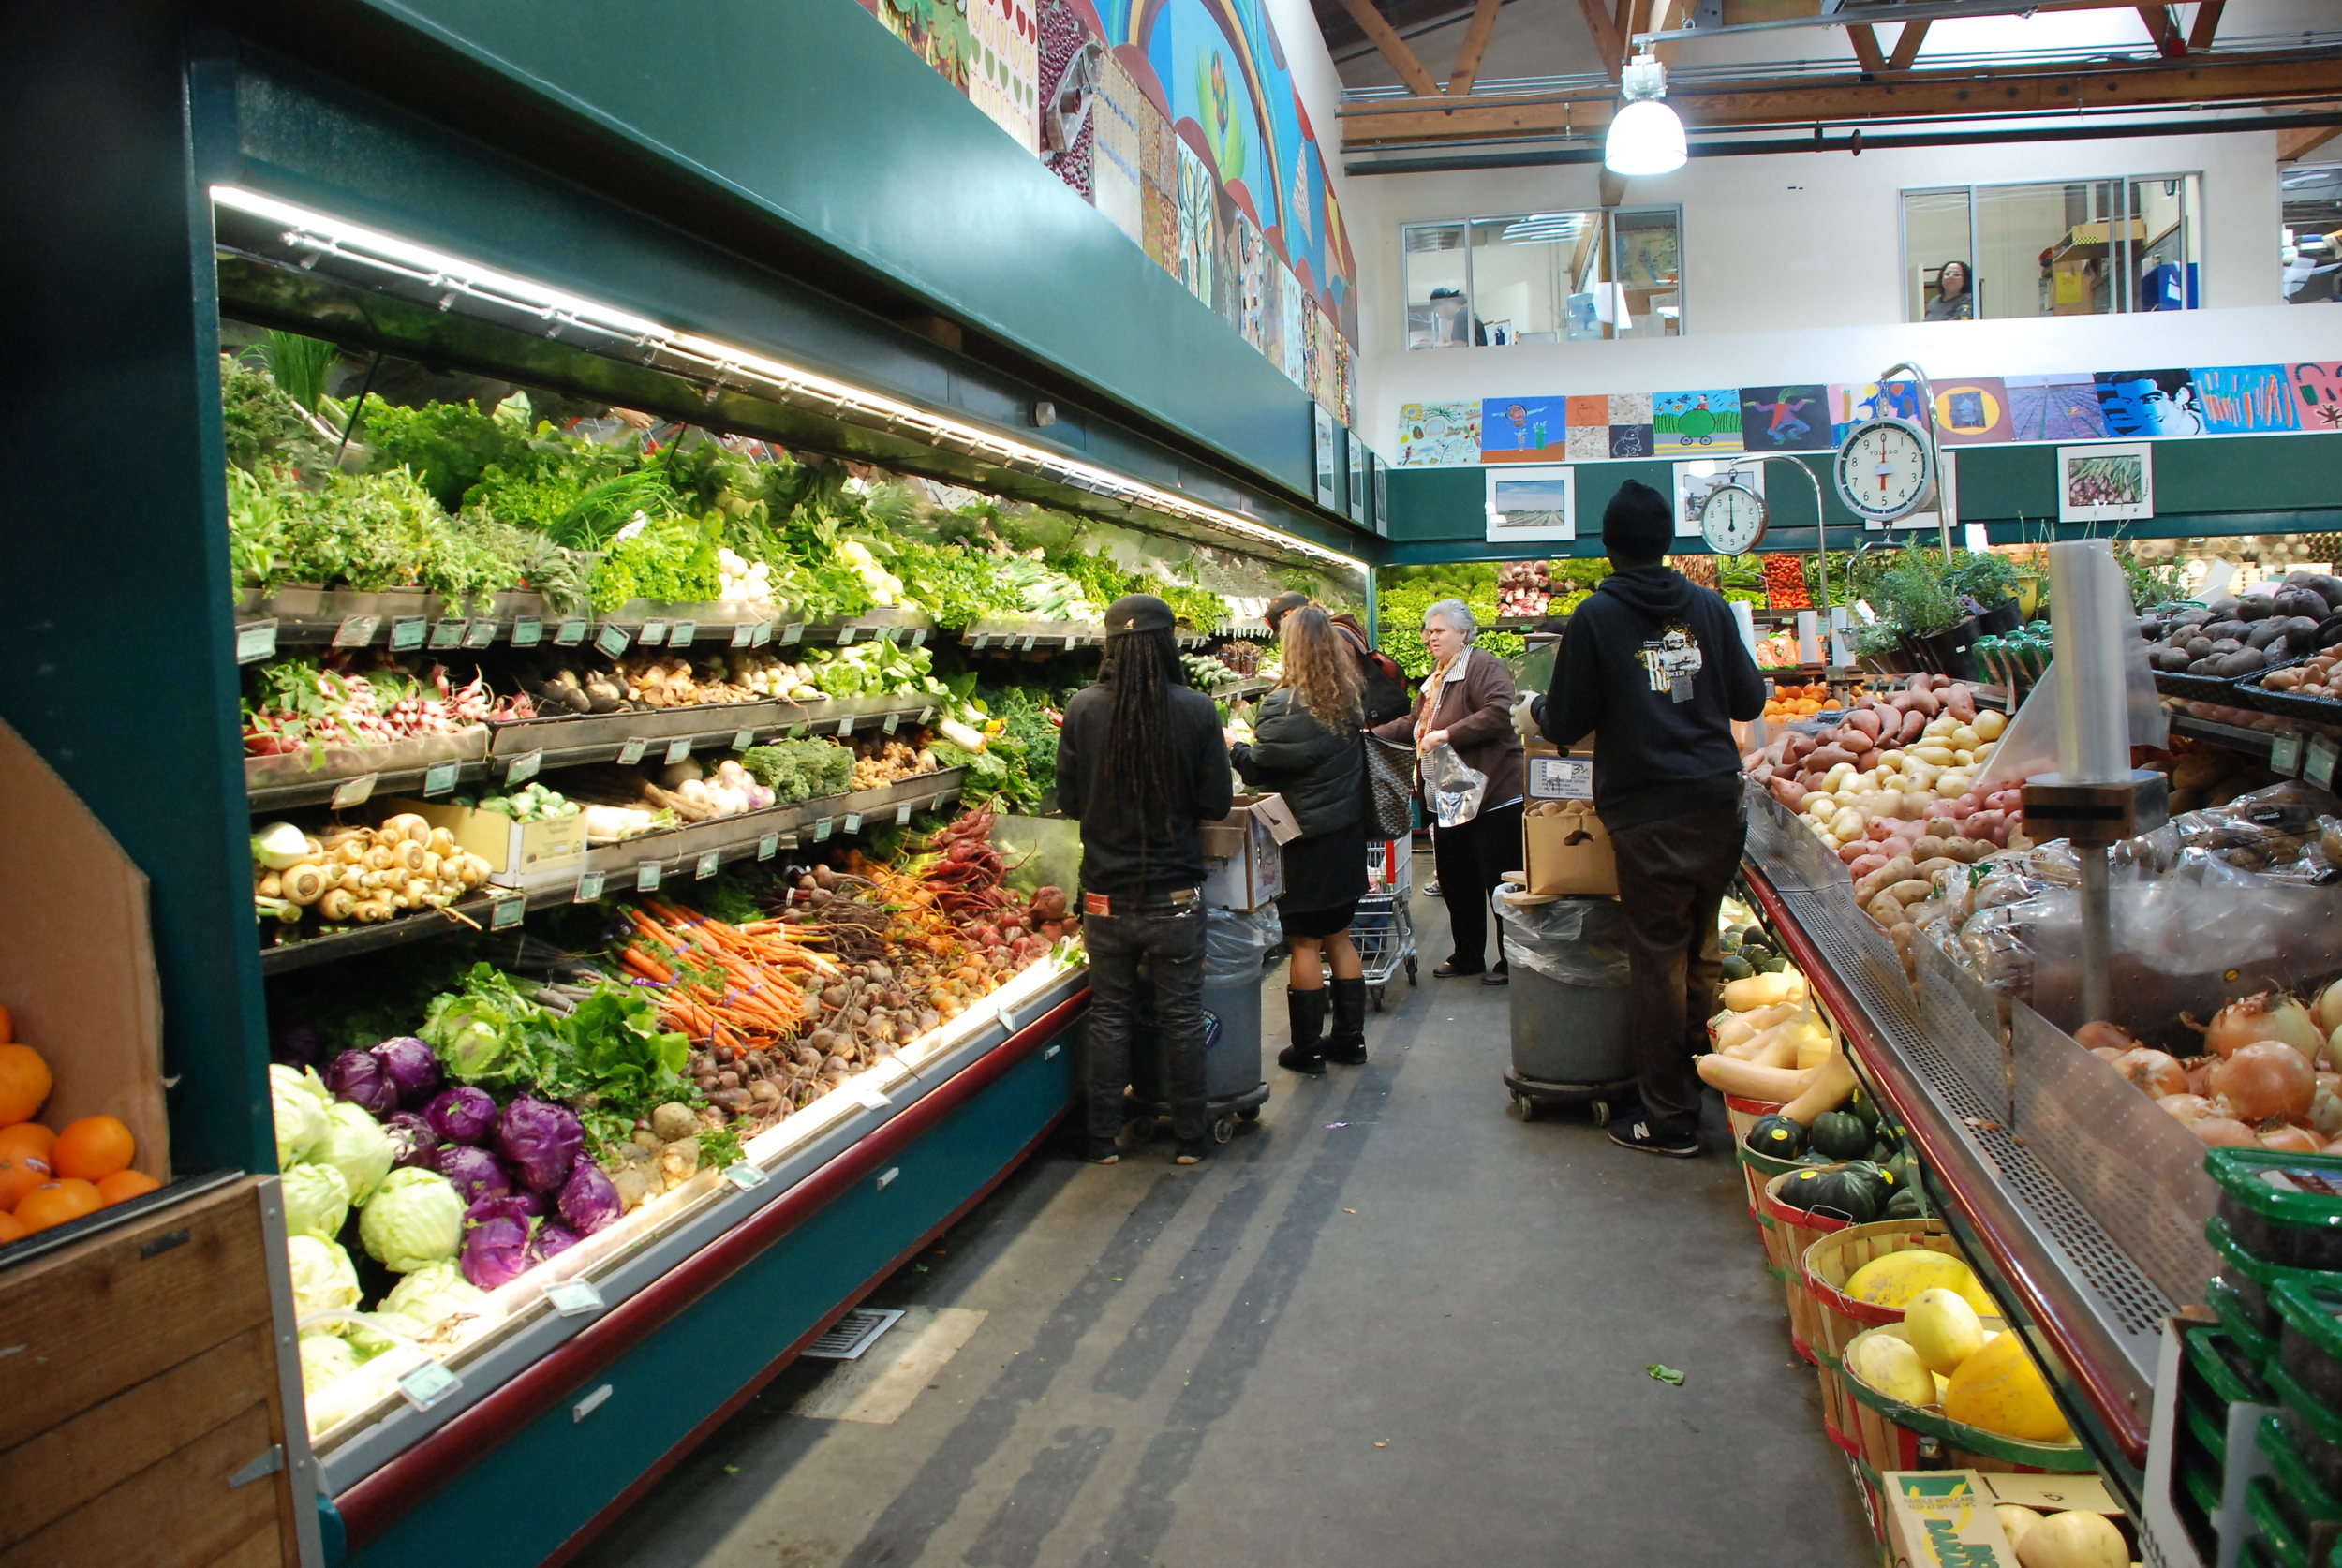 Rainbow Grocery is a warehouse co-op market known for its organic vegetarian items, bulk goods and supplements.